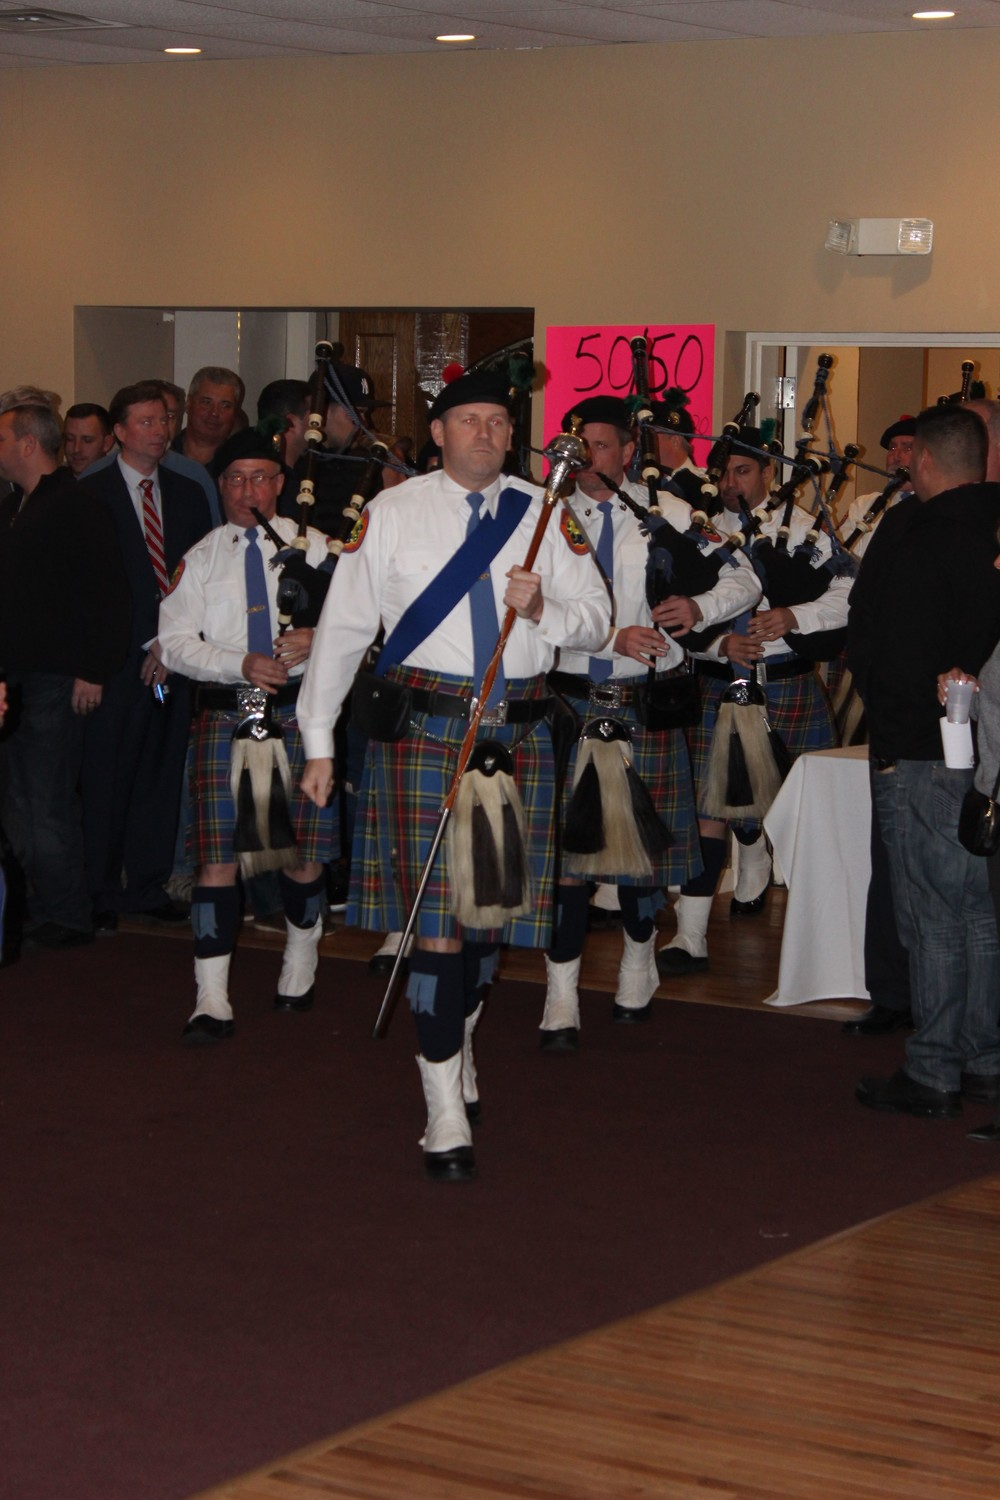 The Nassau County Police Department Pipes & Drums performed at the fundraiser.